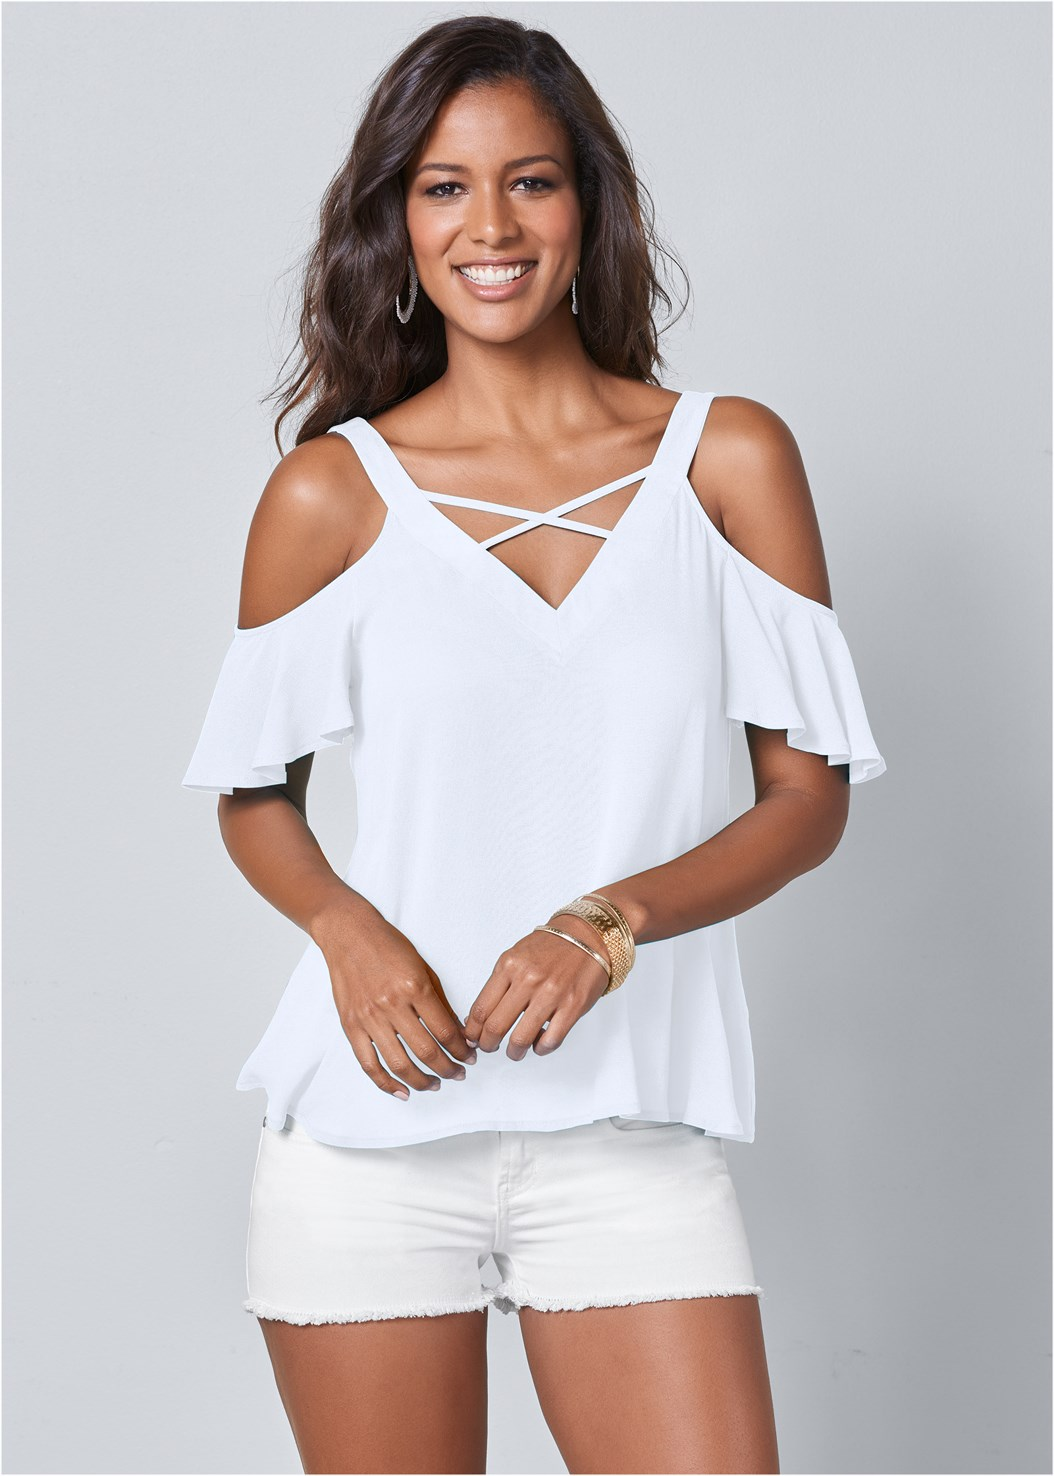 Strappy Detail V-Neck Top,Cut Off Jean Shorts